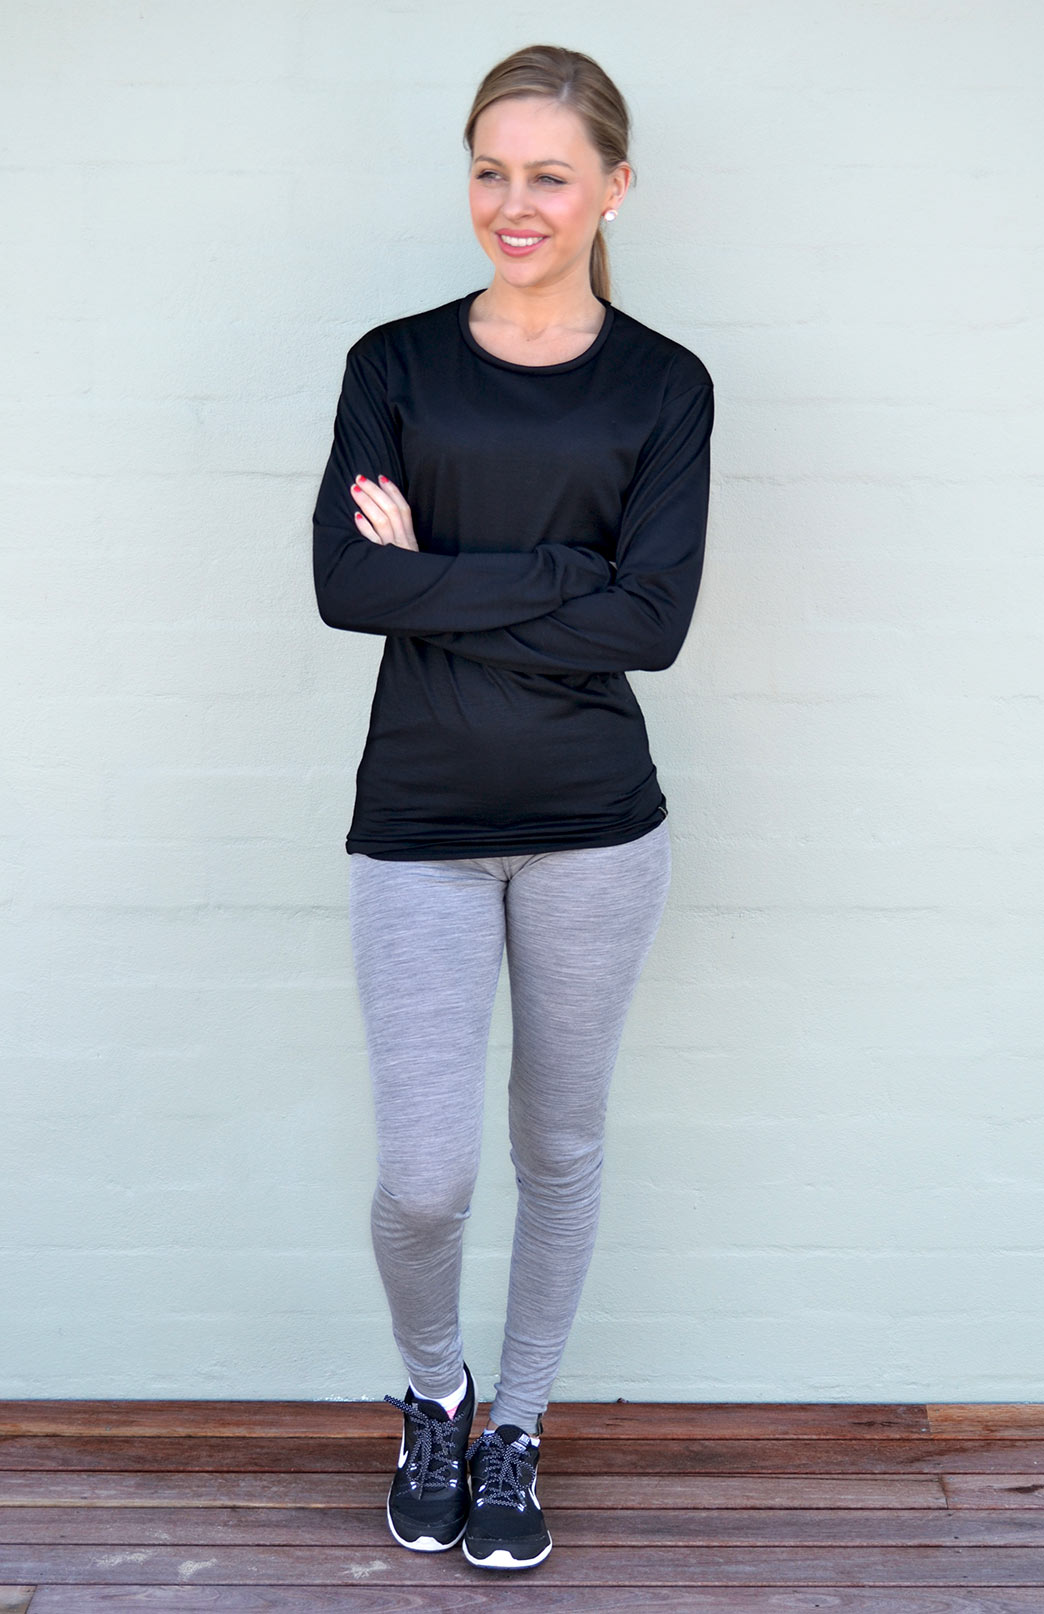 Women's Crew Neck Top - Long Sleeve 170g - Smitten Merino Tasmania Australia